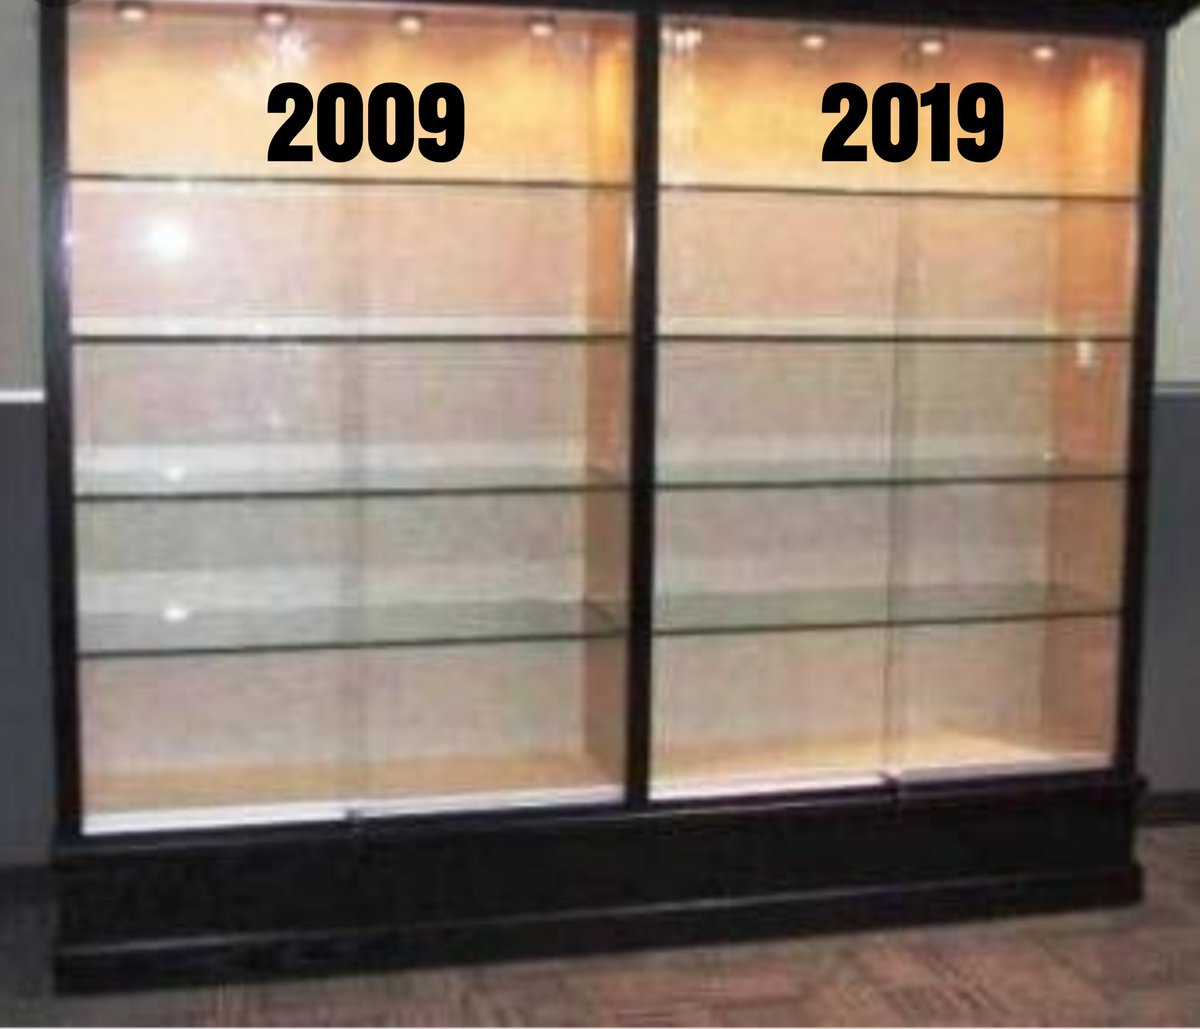 Spurs trophy cabinet. #10yearchallenge<br>http://pic.twitter.com/MGLfyeNLPS